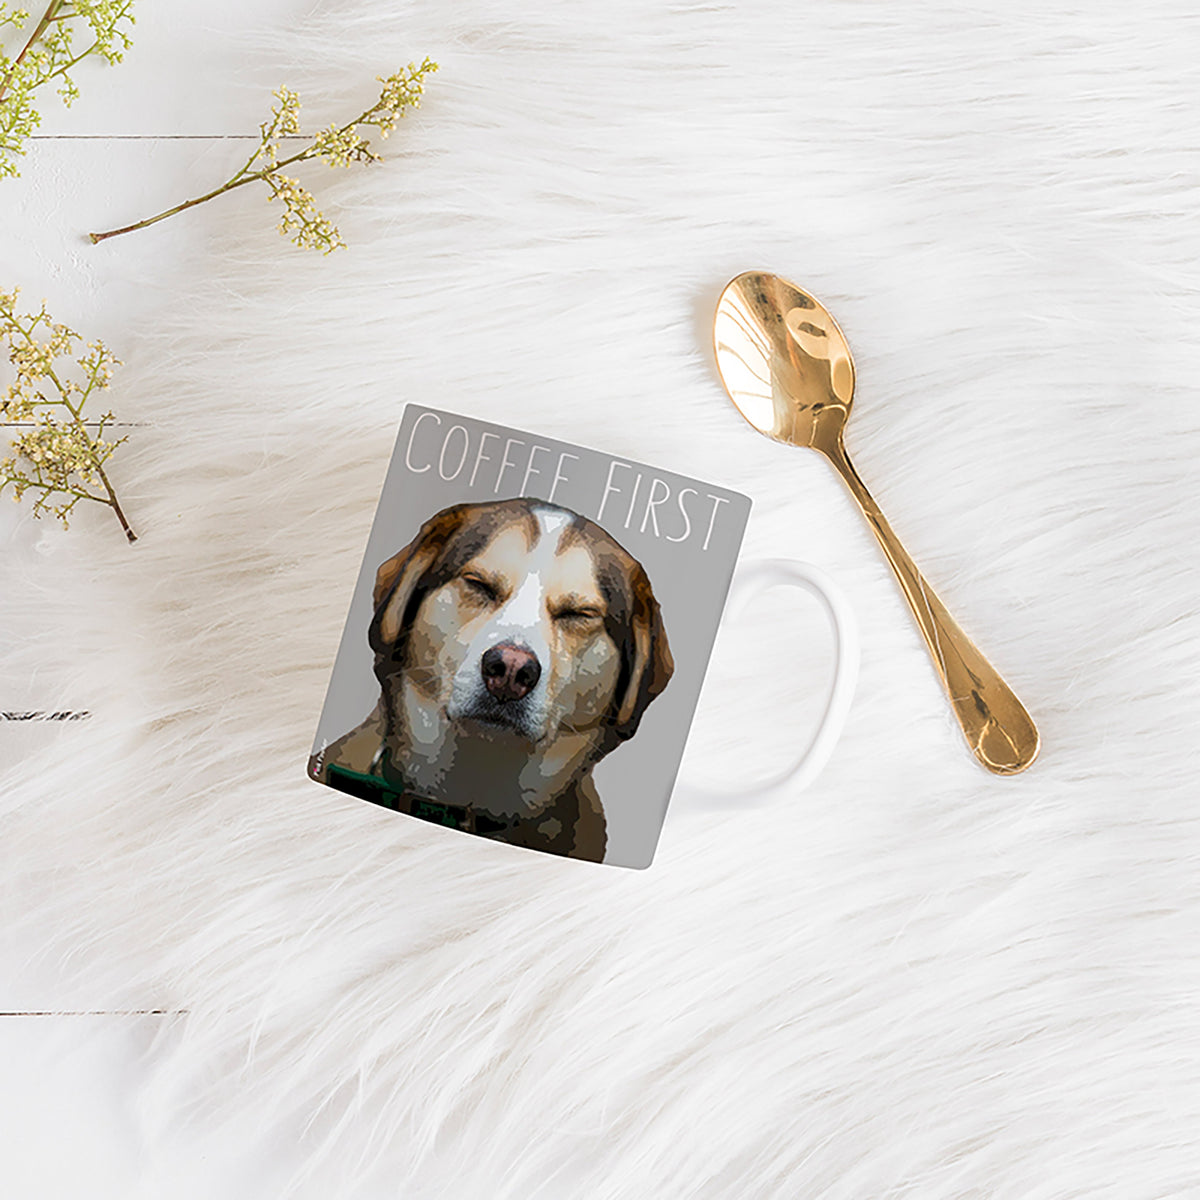 Pop art of a dog on a mug